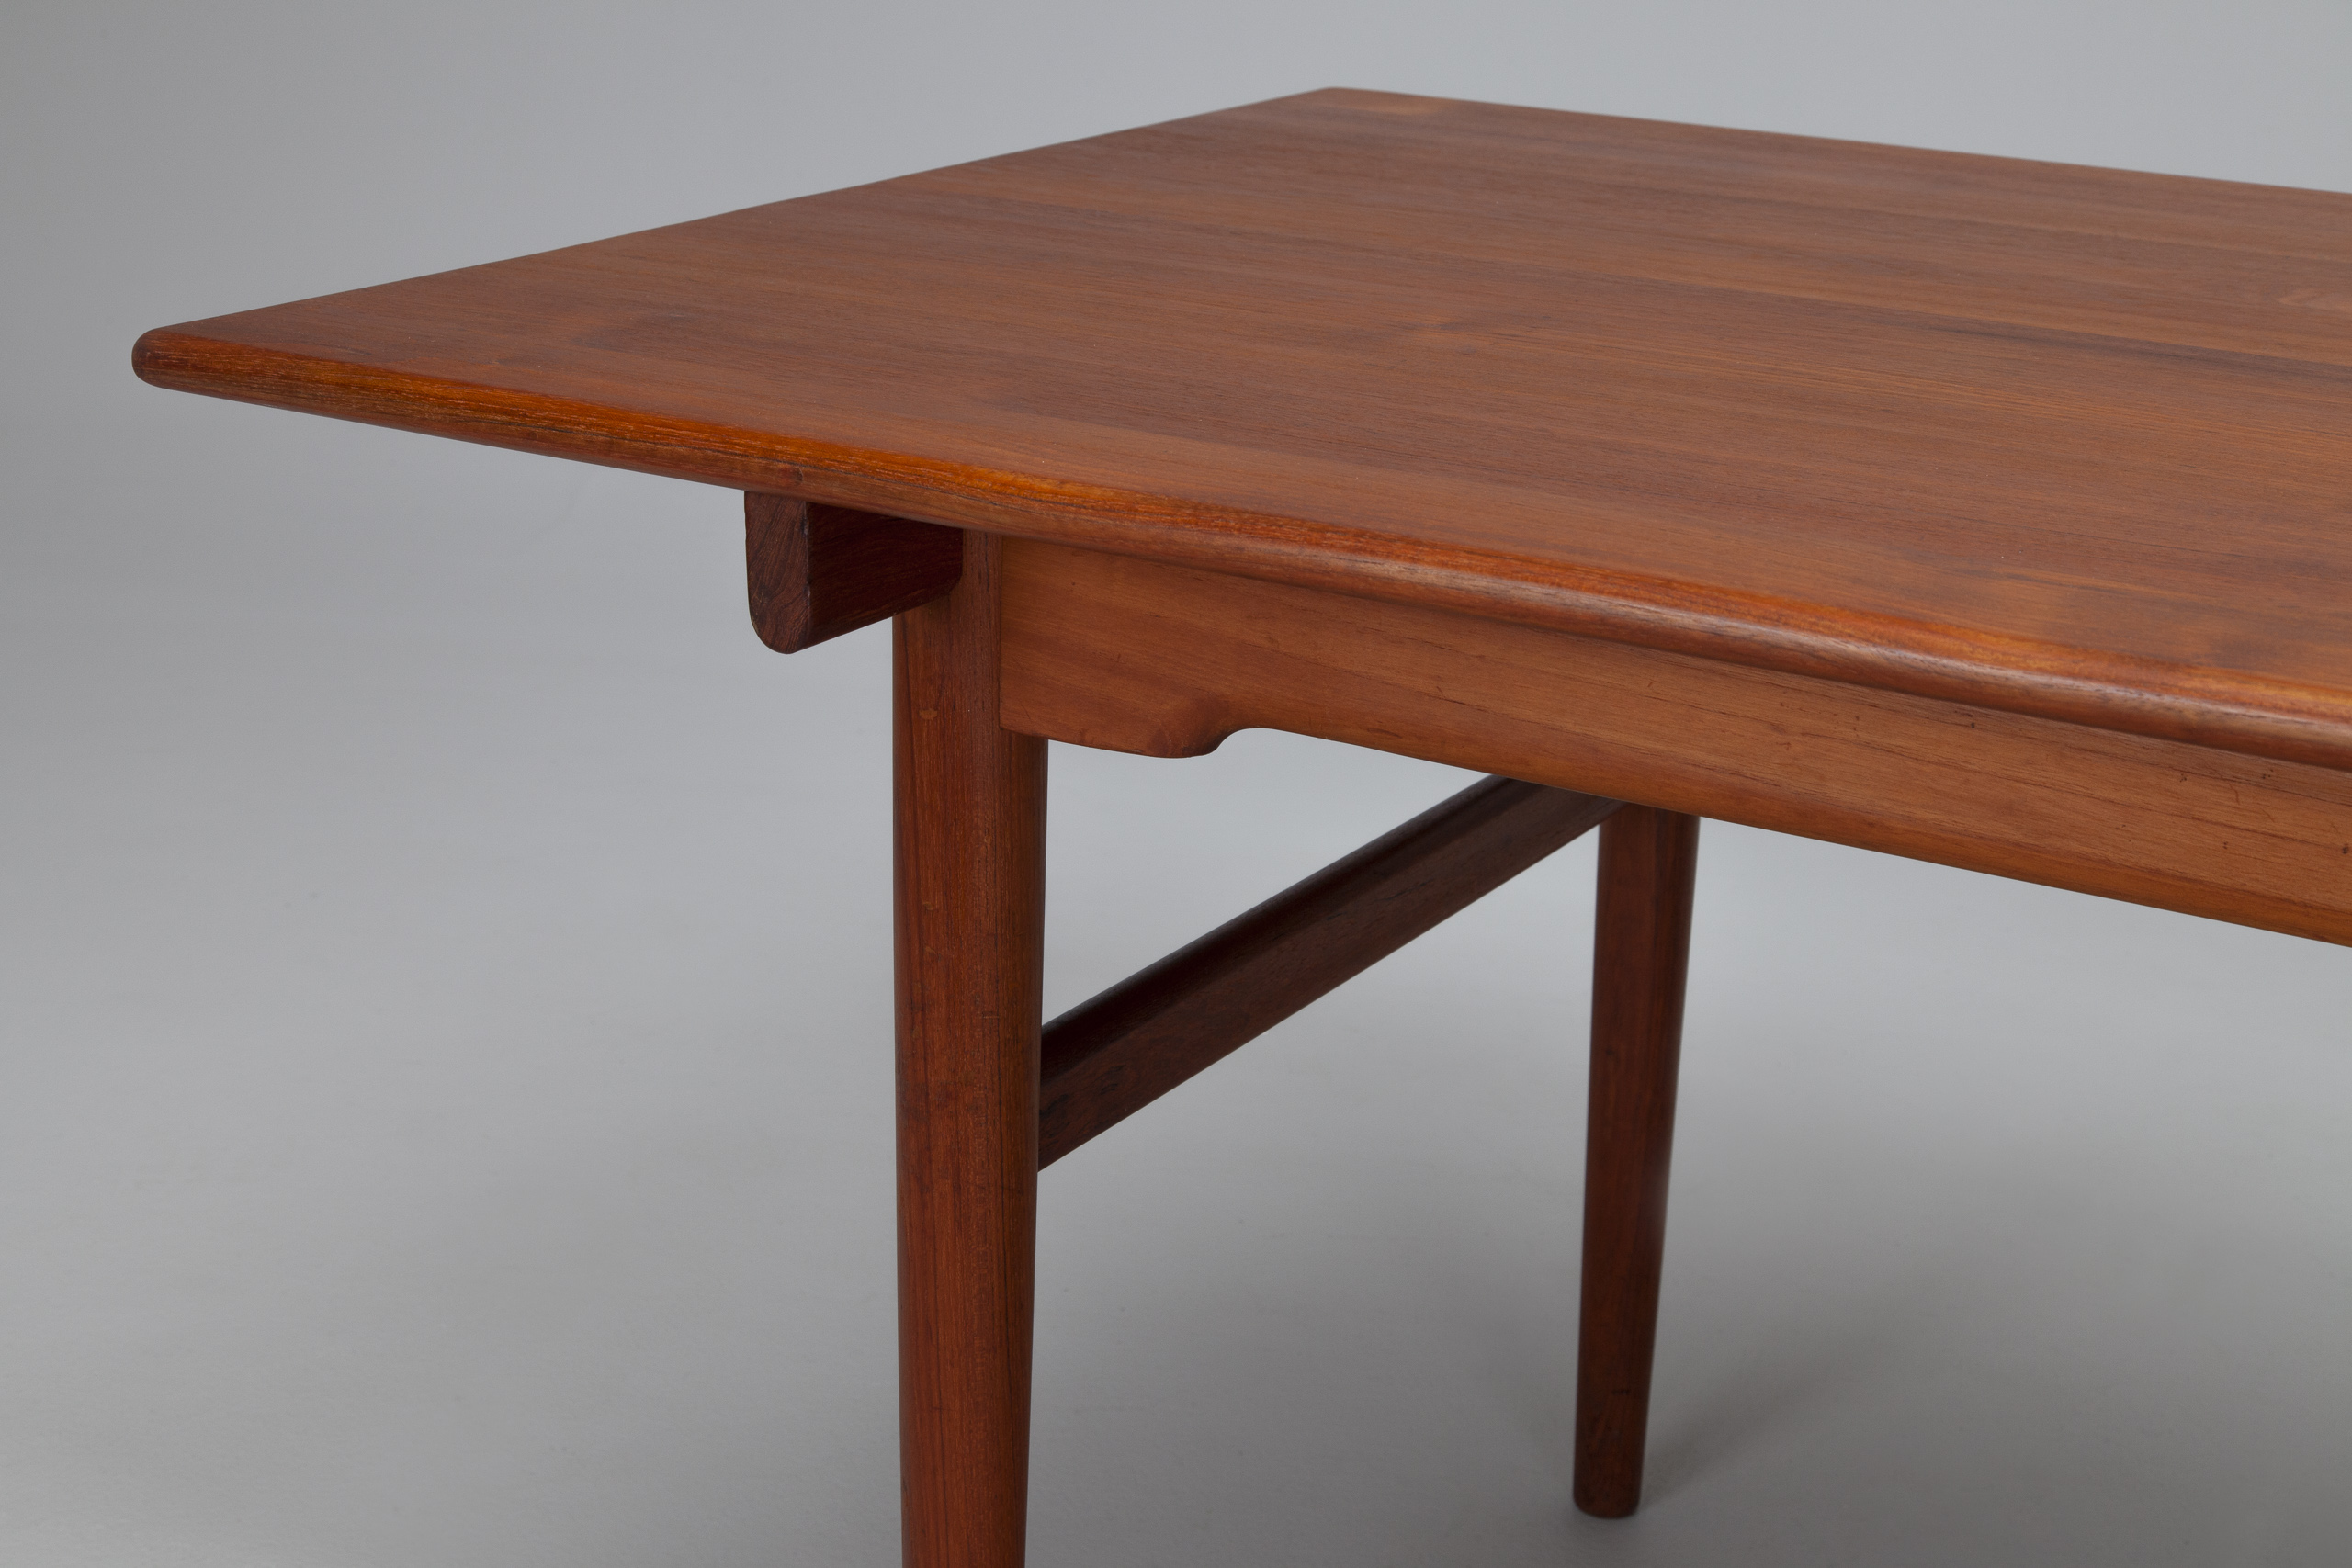 Dining Table, model no. AT 327